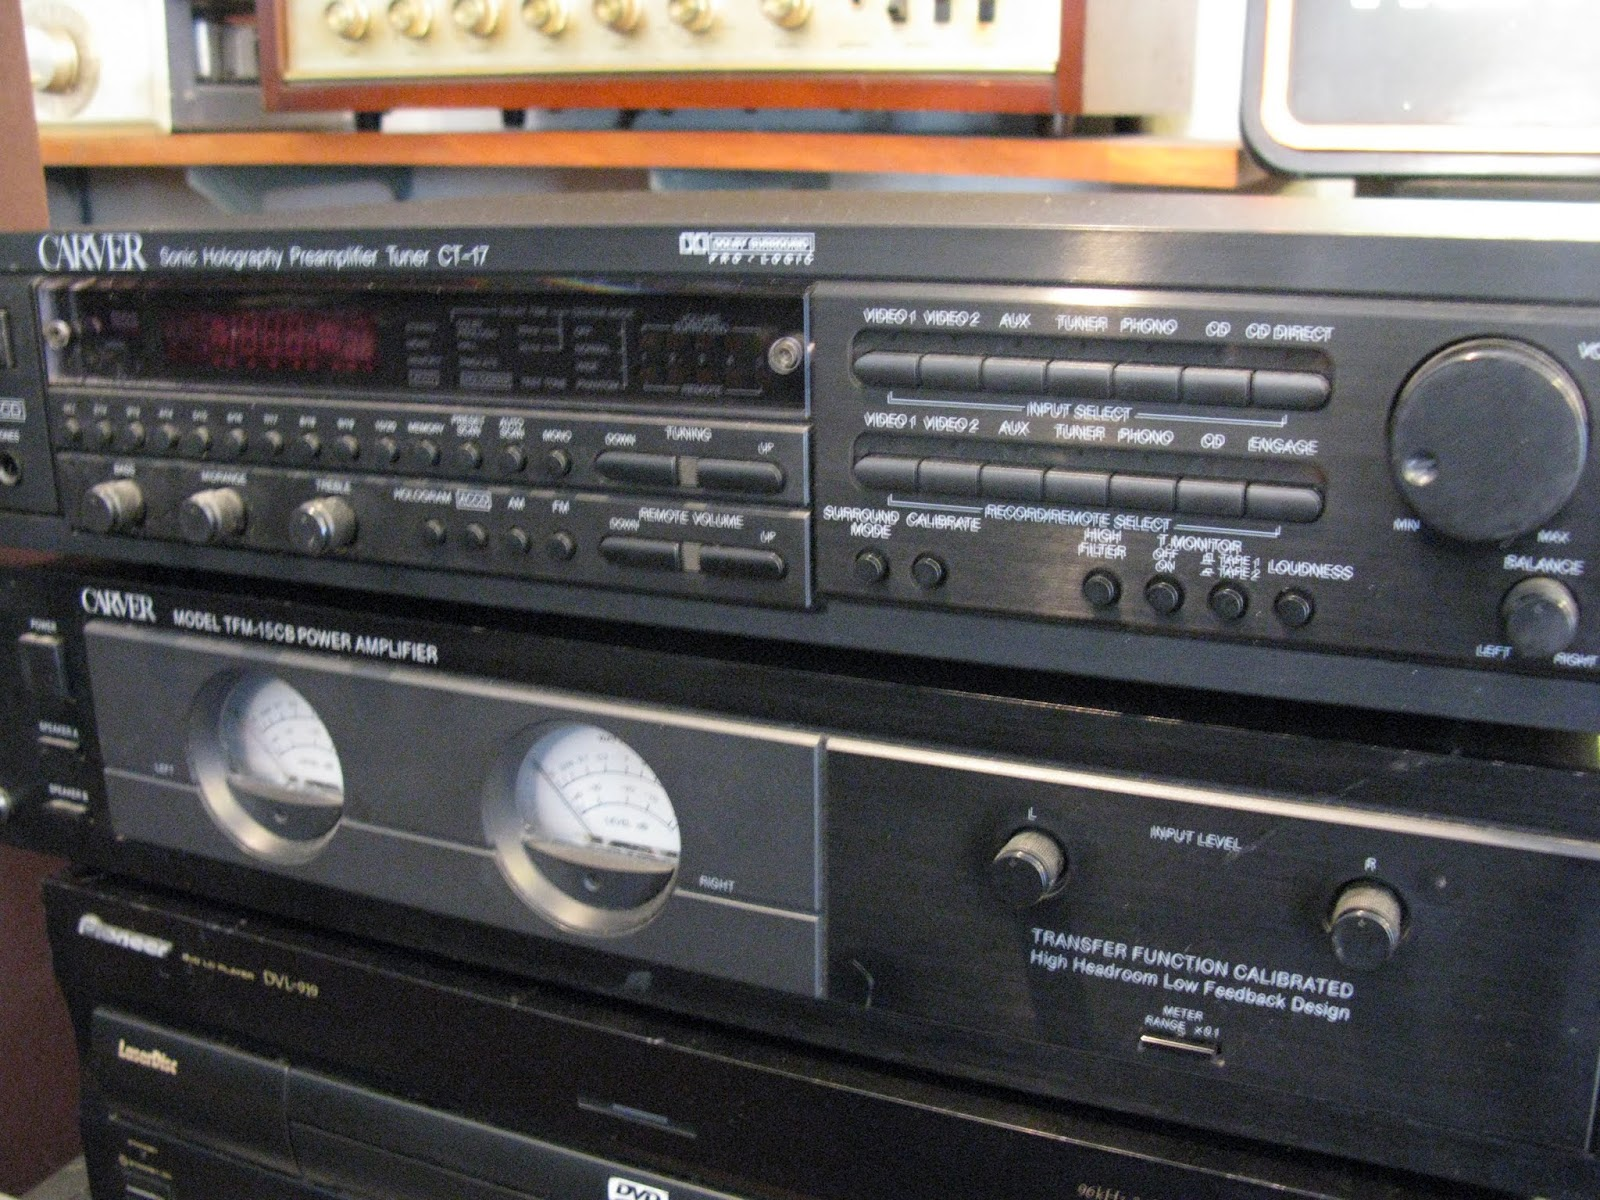 Price for the preamp and the power amp each is $395.00 firm.